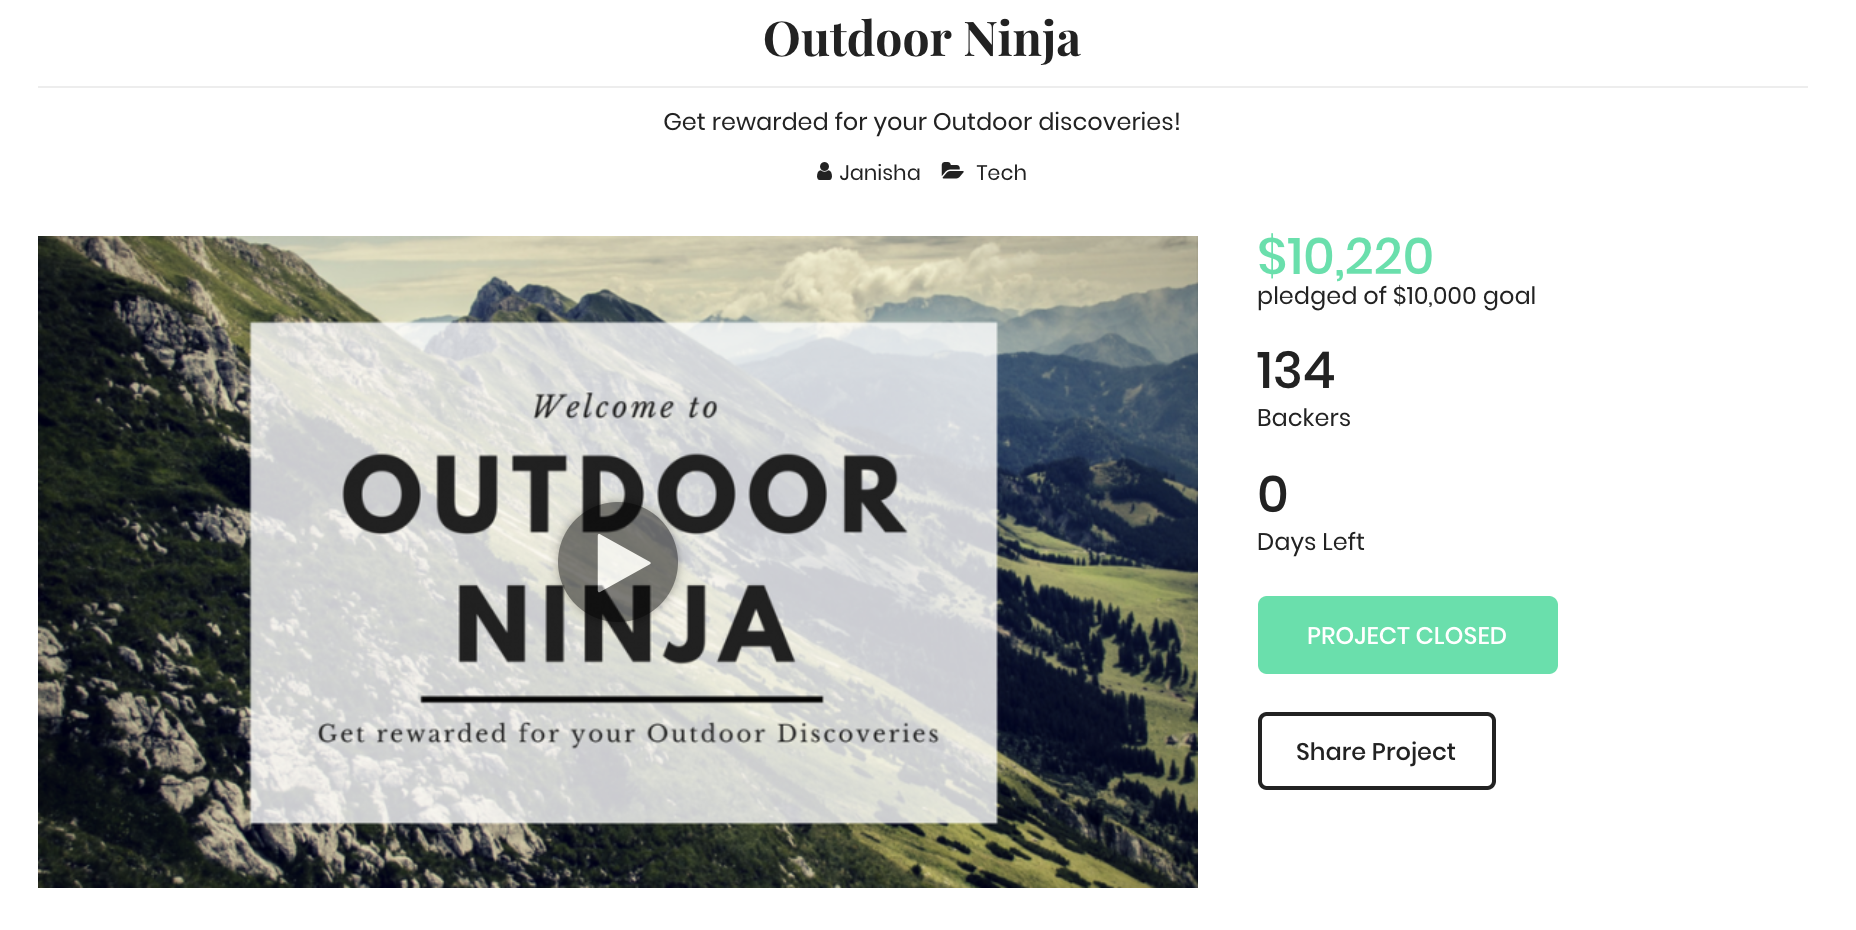 Outdoor Ninja  is a mobile app that rewards you for your outdoor discoveries. Founder & CEO, Janisha Anand, needed to raise money to finish the programming build of her app.